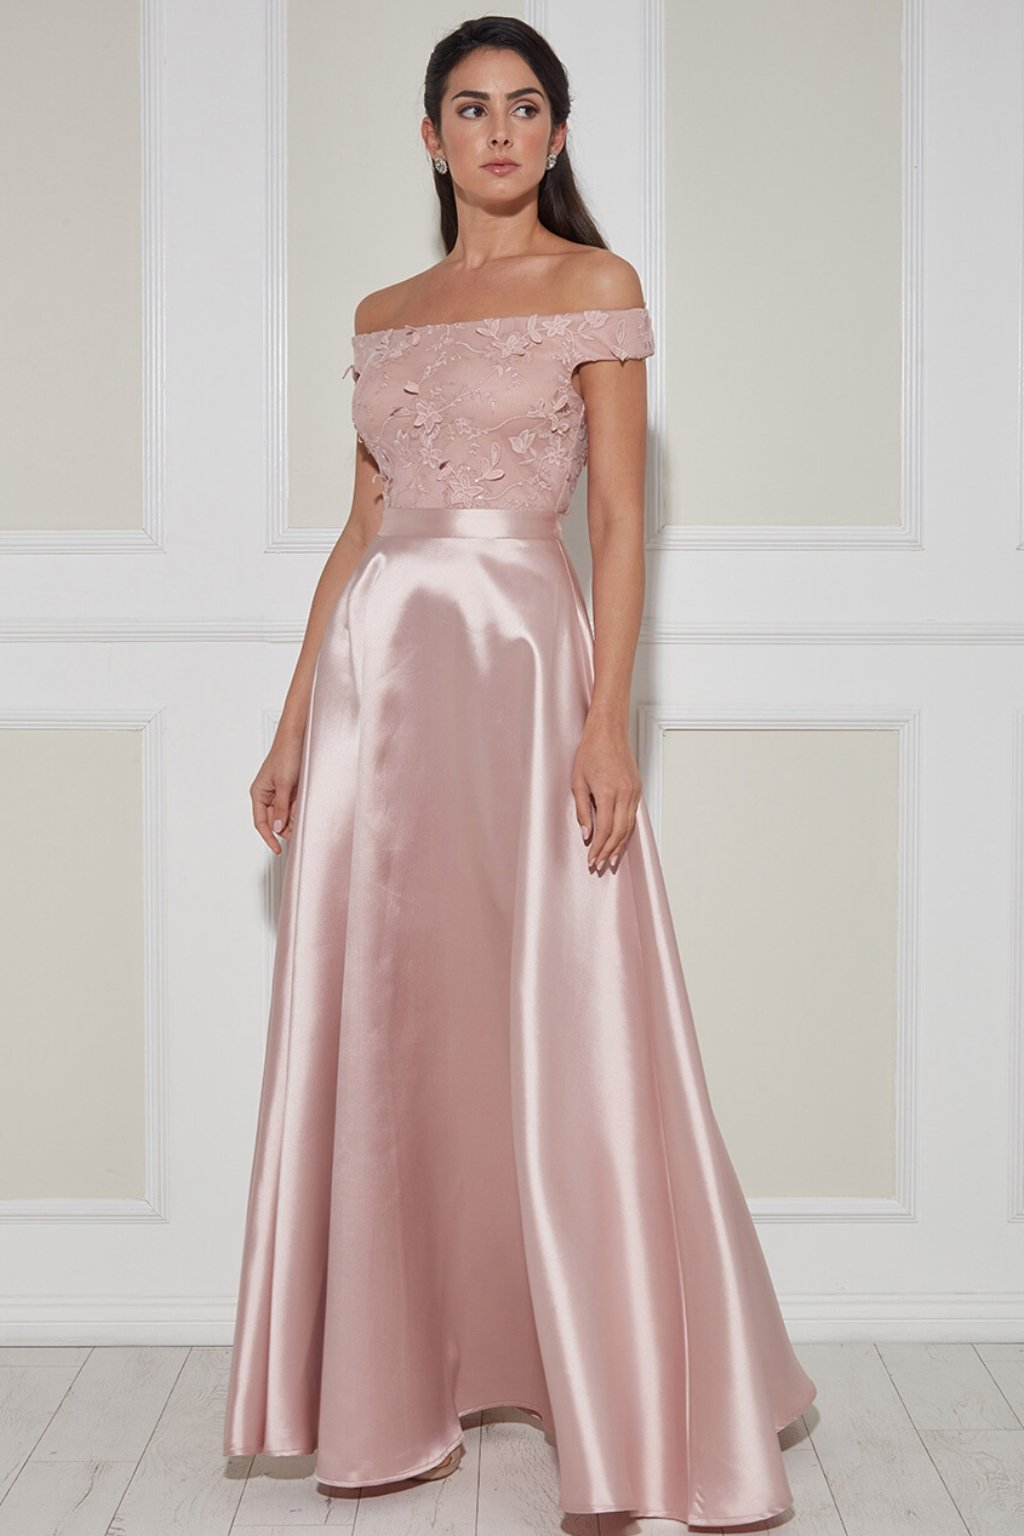 Dusty pink formal dress with flowers